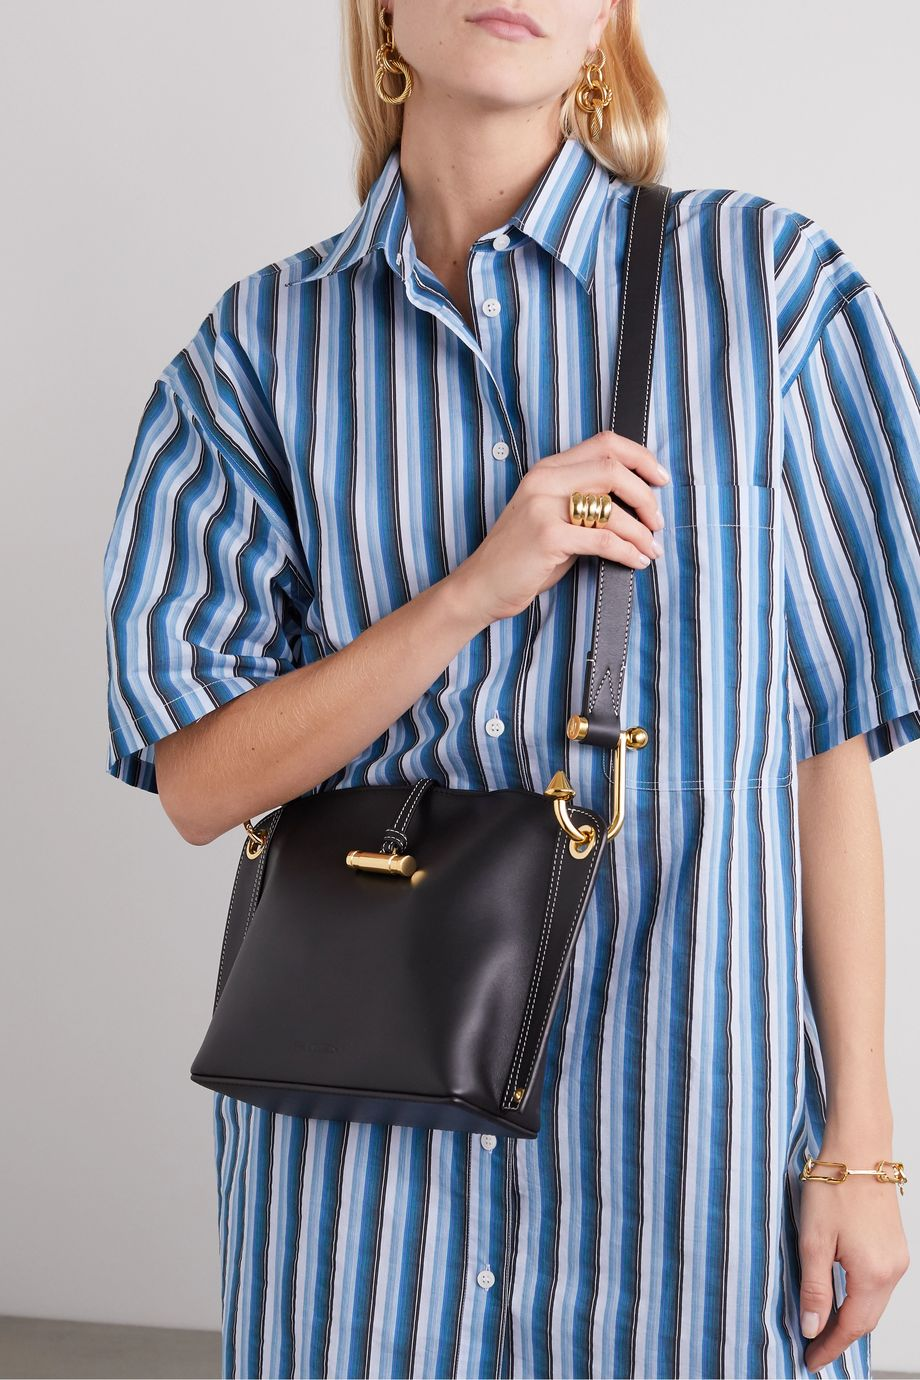 JW Anderson Hoist small leather shoulder bag